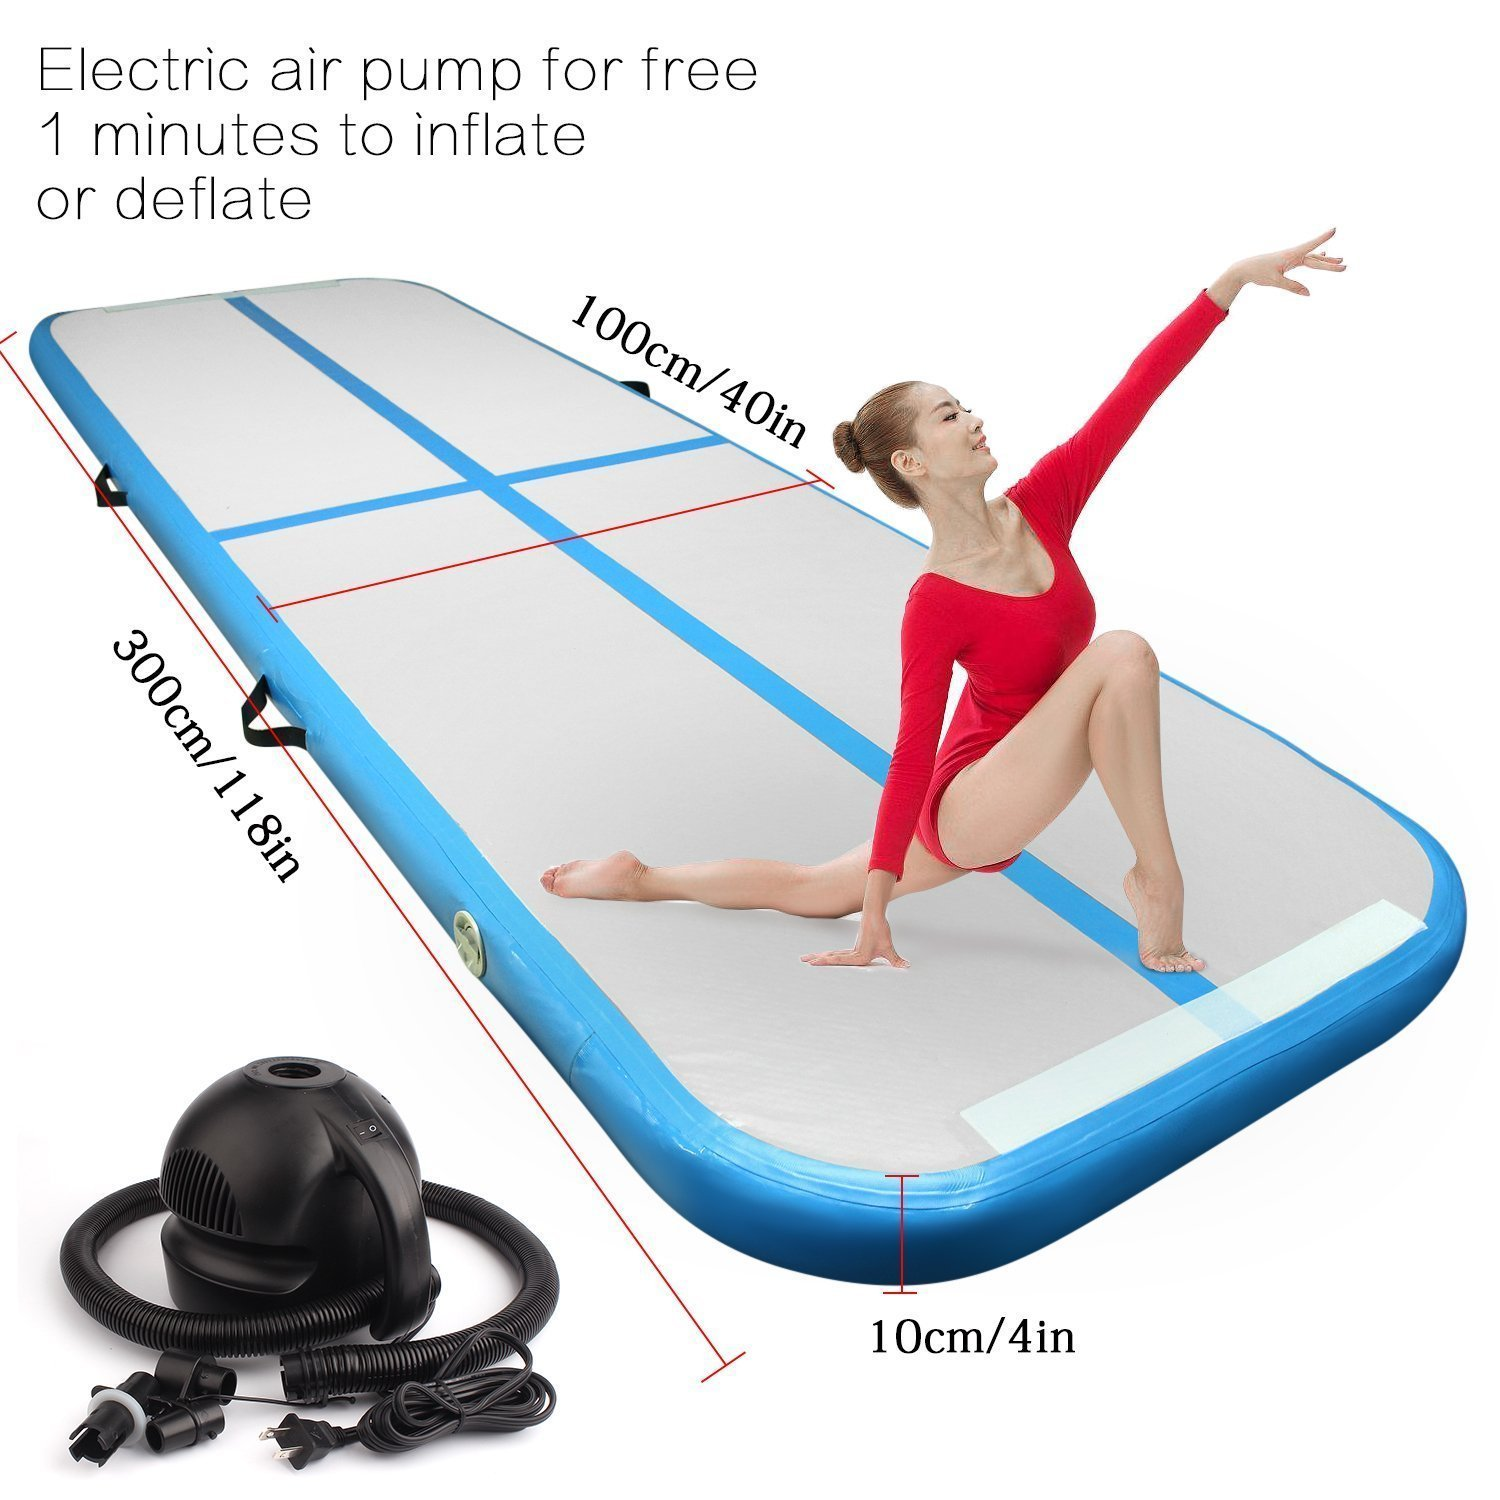 FBSPORT 9.84ft air Track Tumbling mat Inflatable Gymnastics airtrack with Electric Air Pump for Practice Gymnastics, Tumbling,Parkour, Home Floor